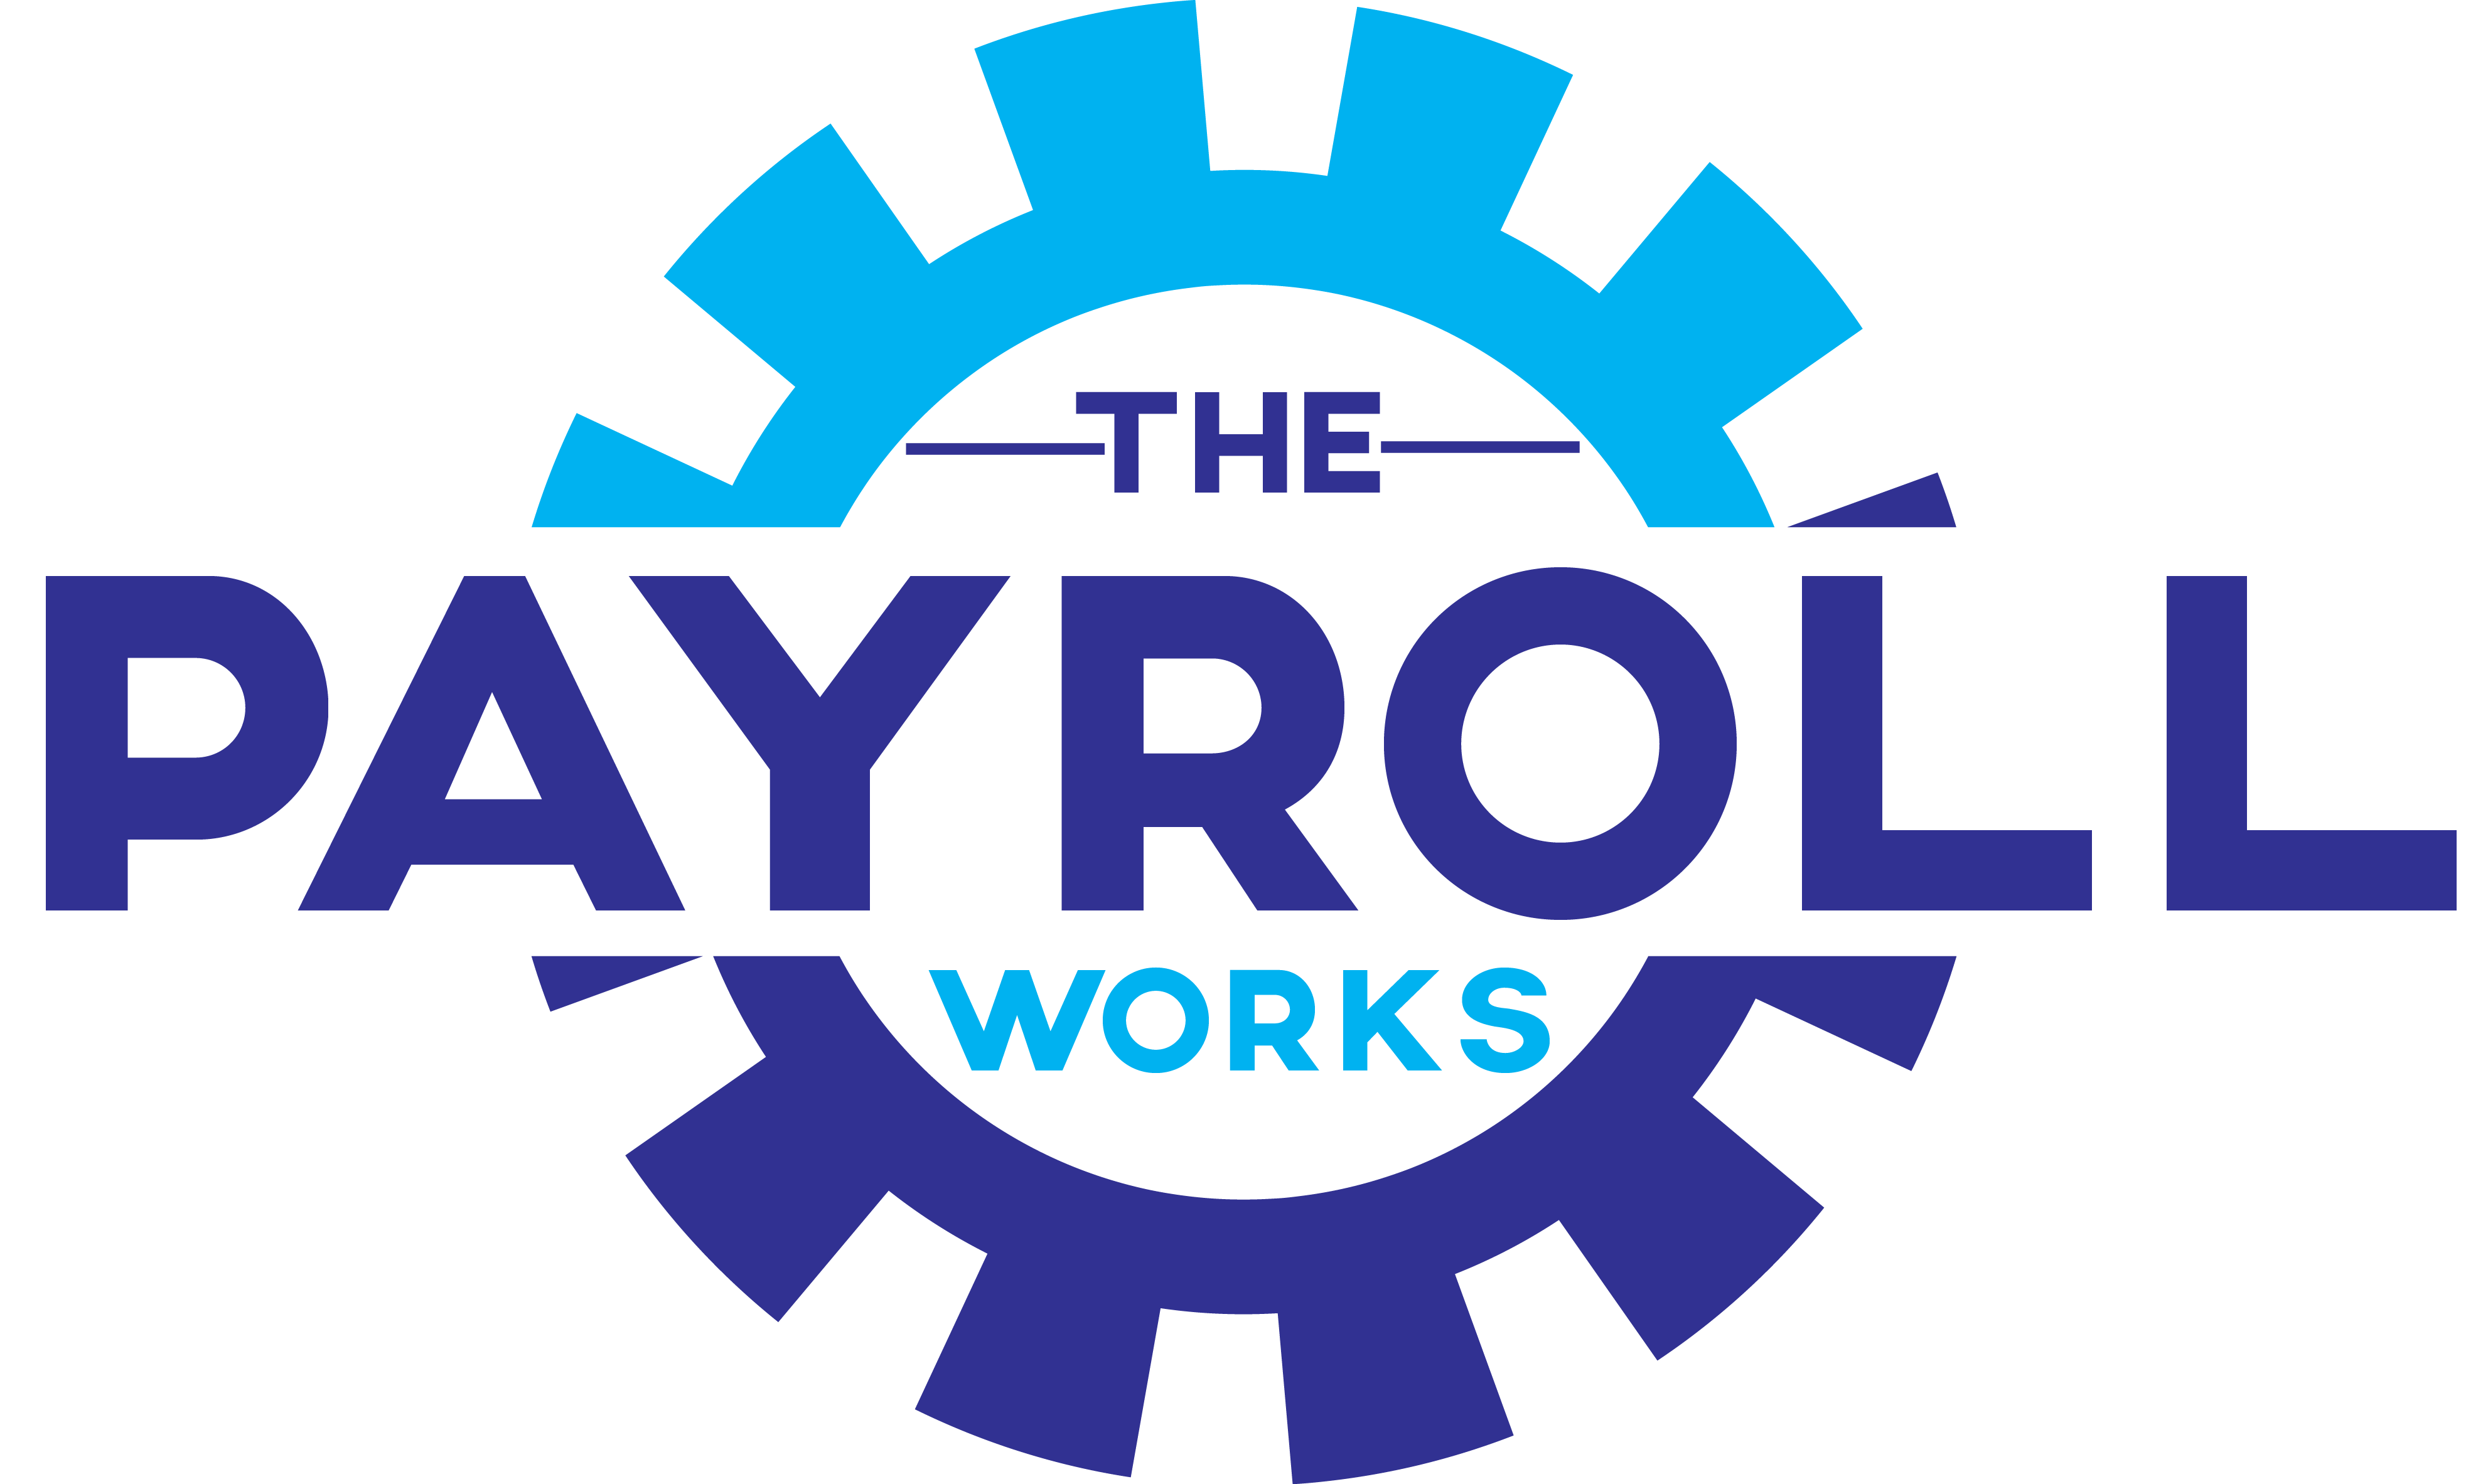 Logo Design by Ayrin Akter - Entry No. 156 in the Logo Design Contest Captivating Logo Design for The Payroll Works.